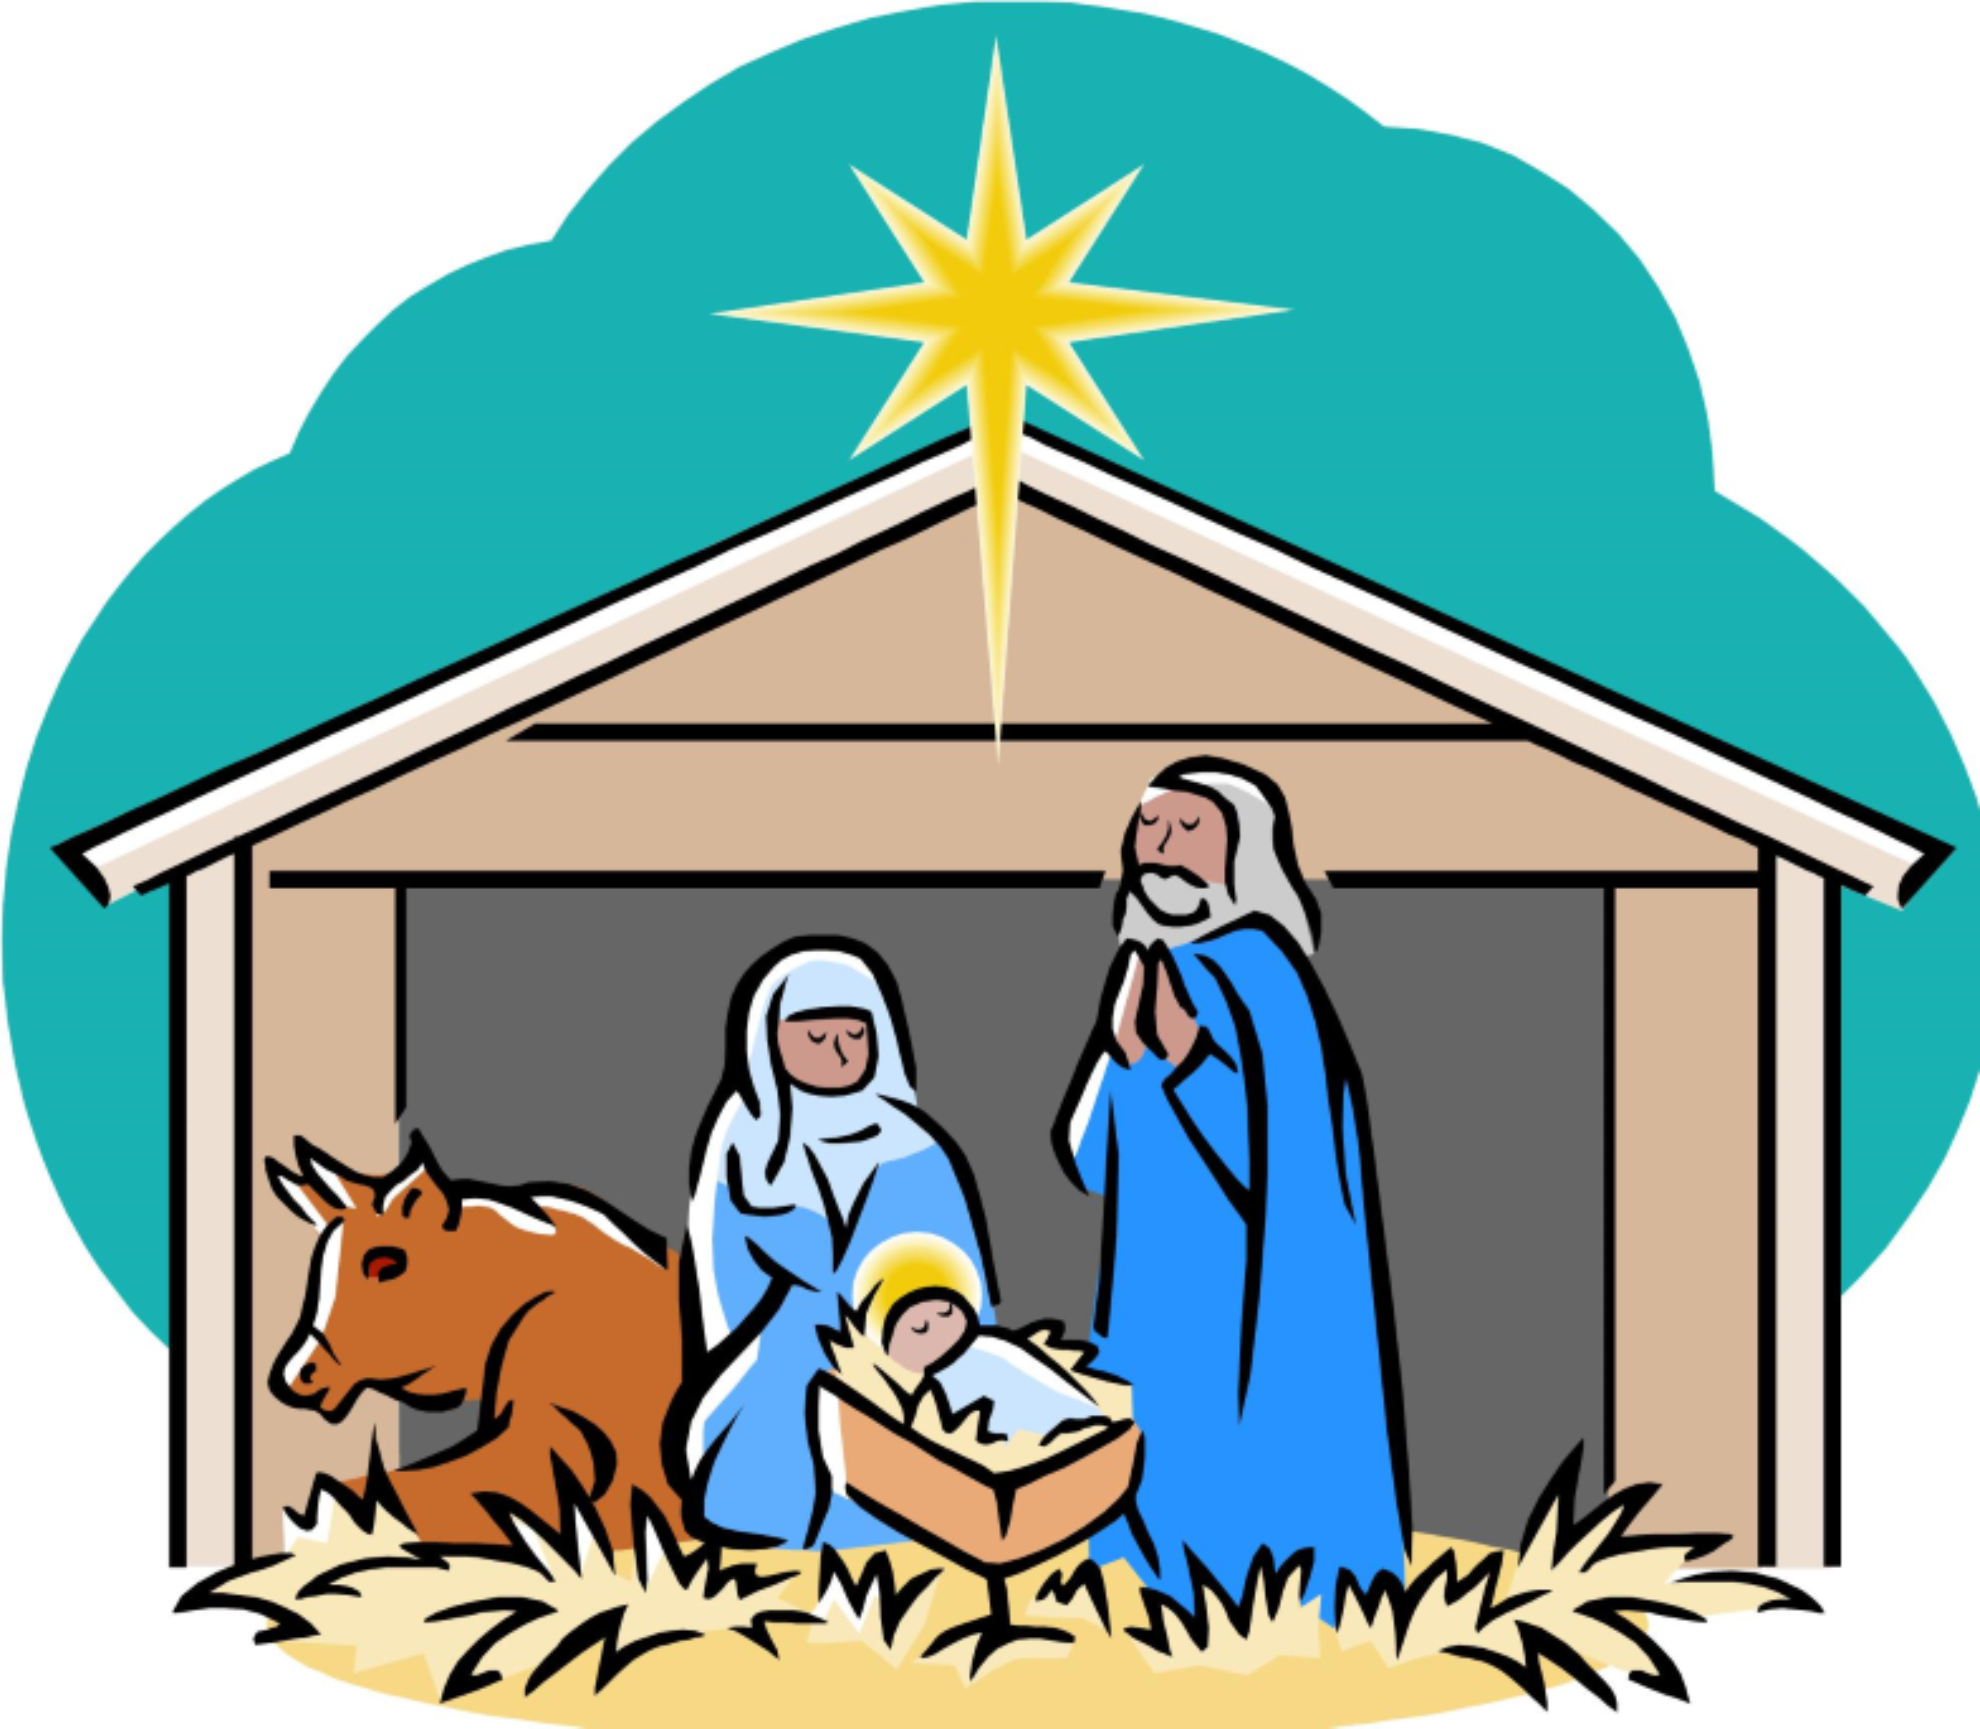 First sunday of the new year church clipart vector Church Activities Cliparts | Free download best Church Activities ... vector